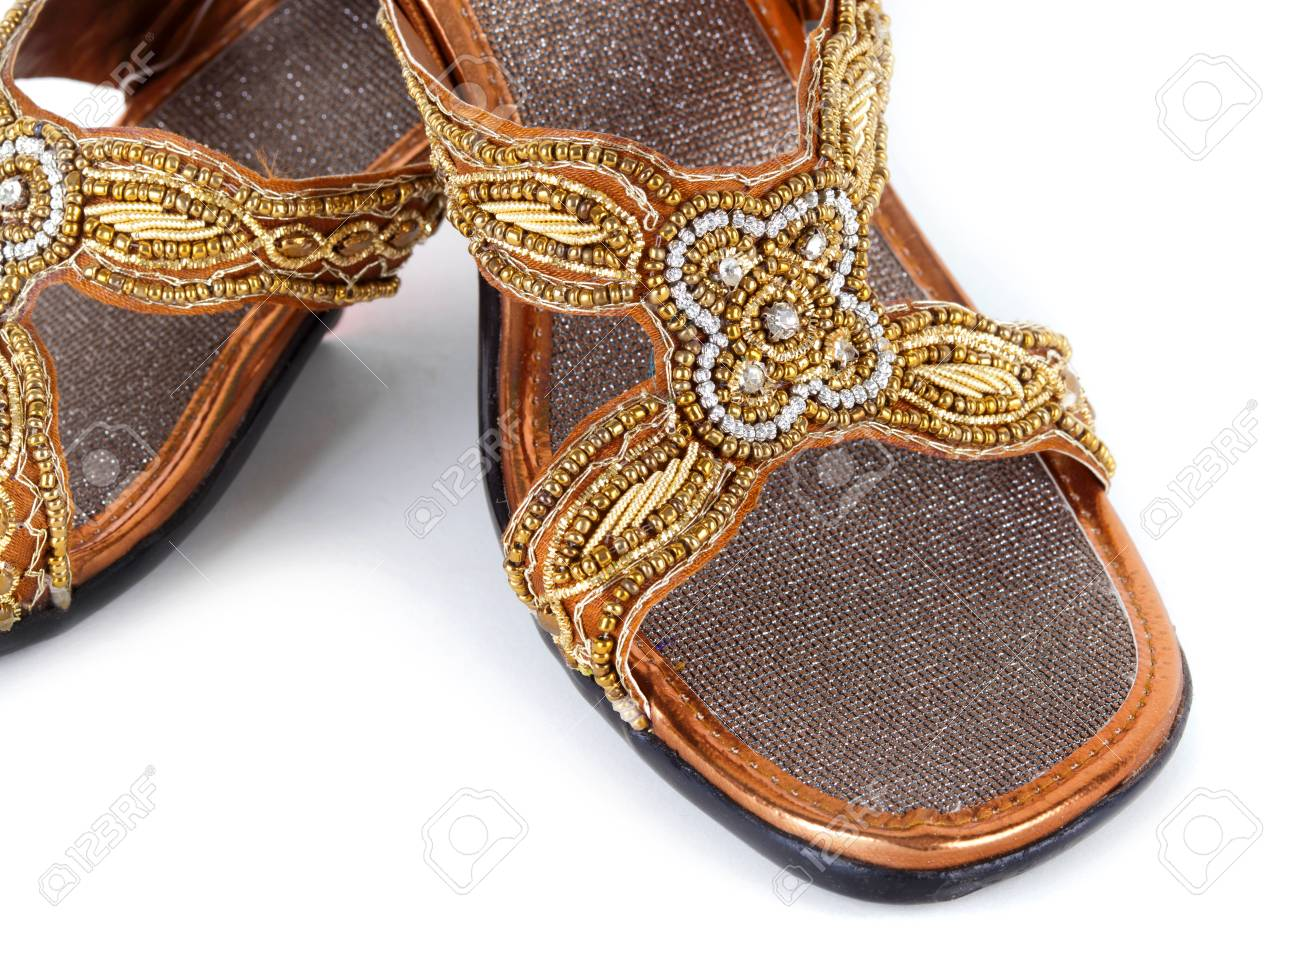 ef4c3501b2e9 Pair of traditional Indian sandals on white background Stock Photo -  24199591